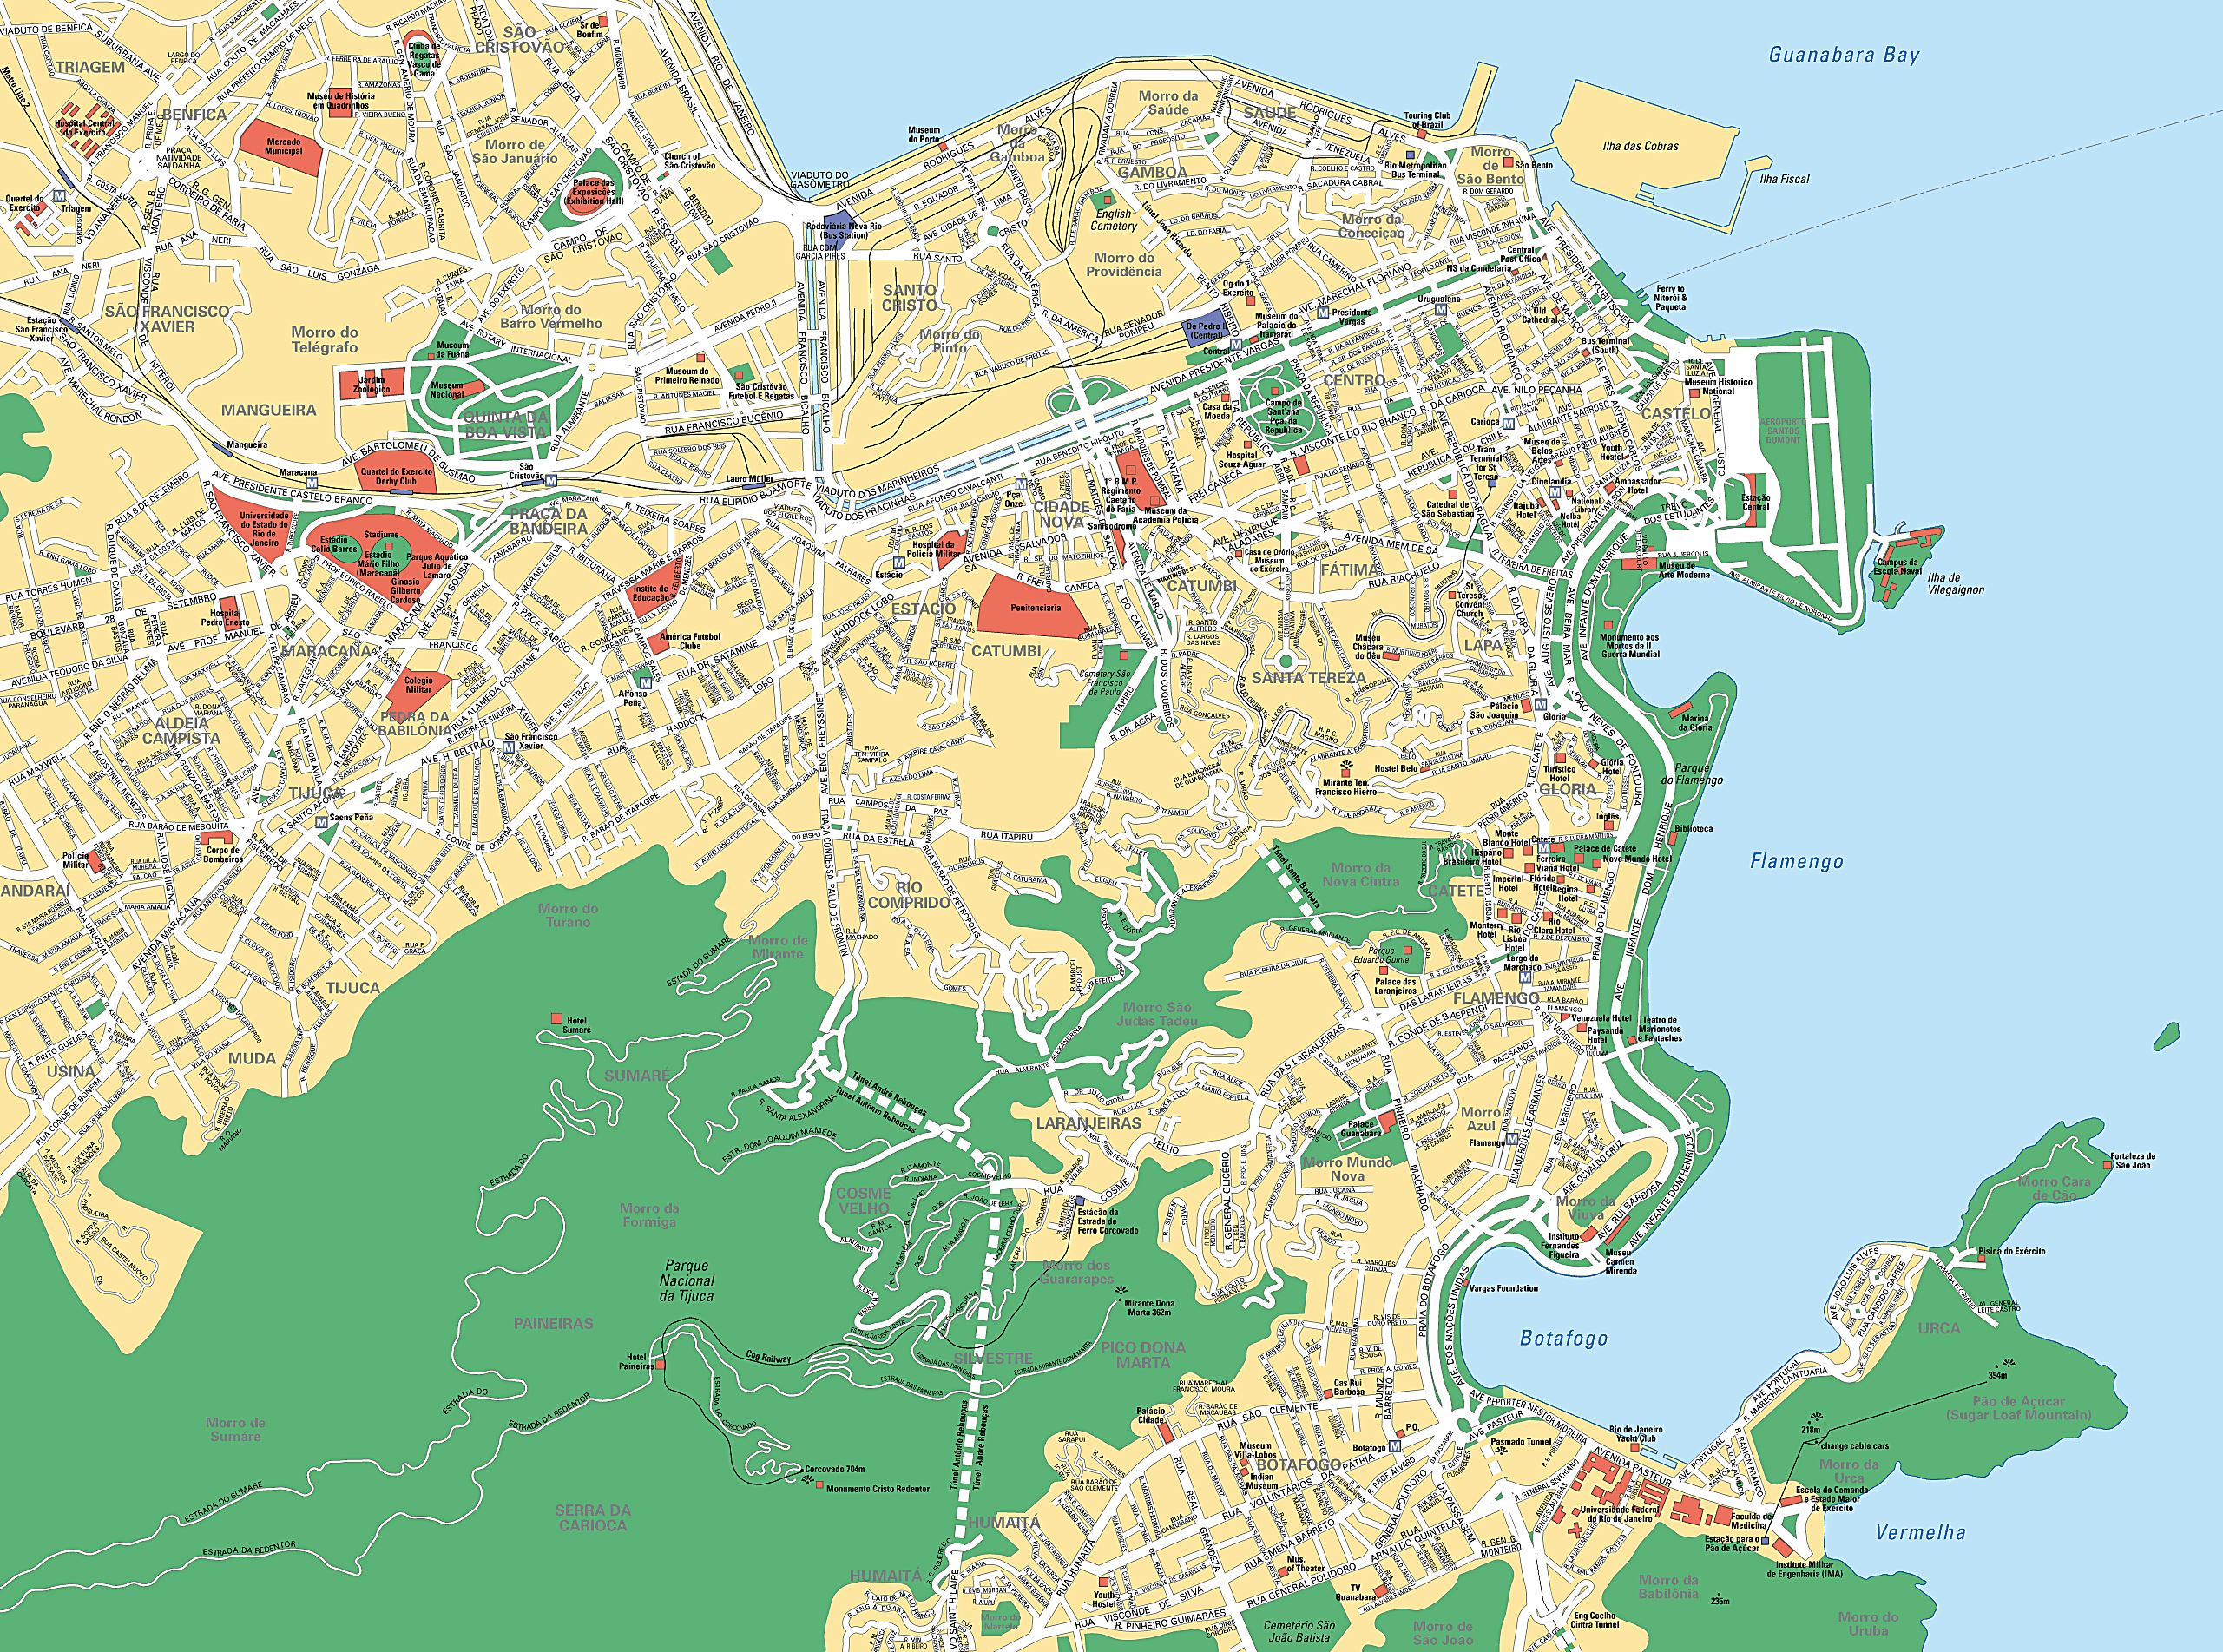 Large Rio de Janeiro Maps for Free Download and Print | High